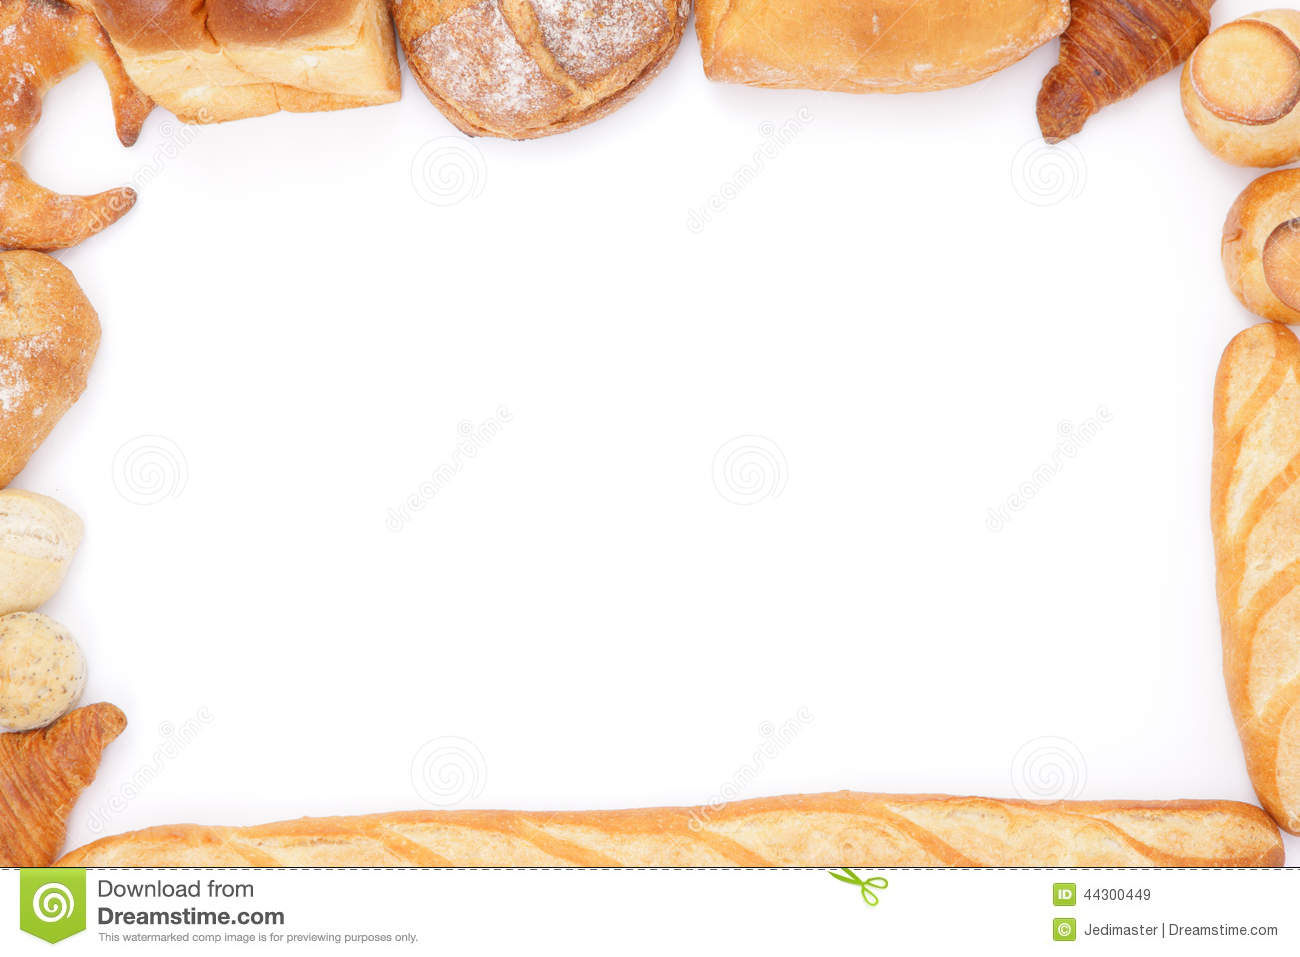 Bread pencil and in. Bakery clipart frame